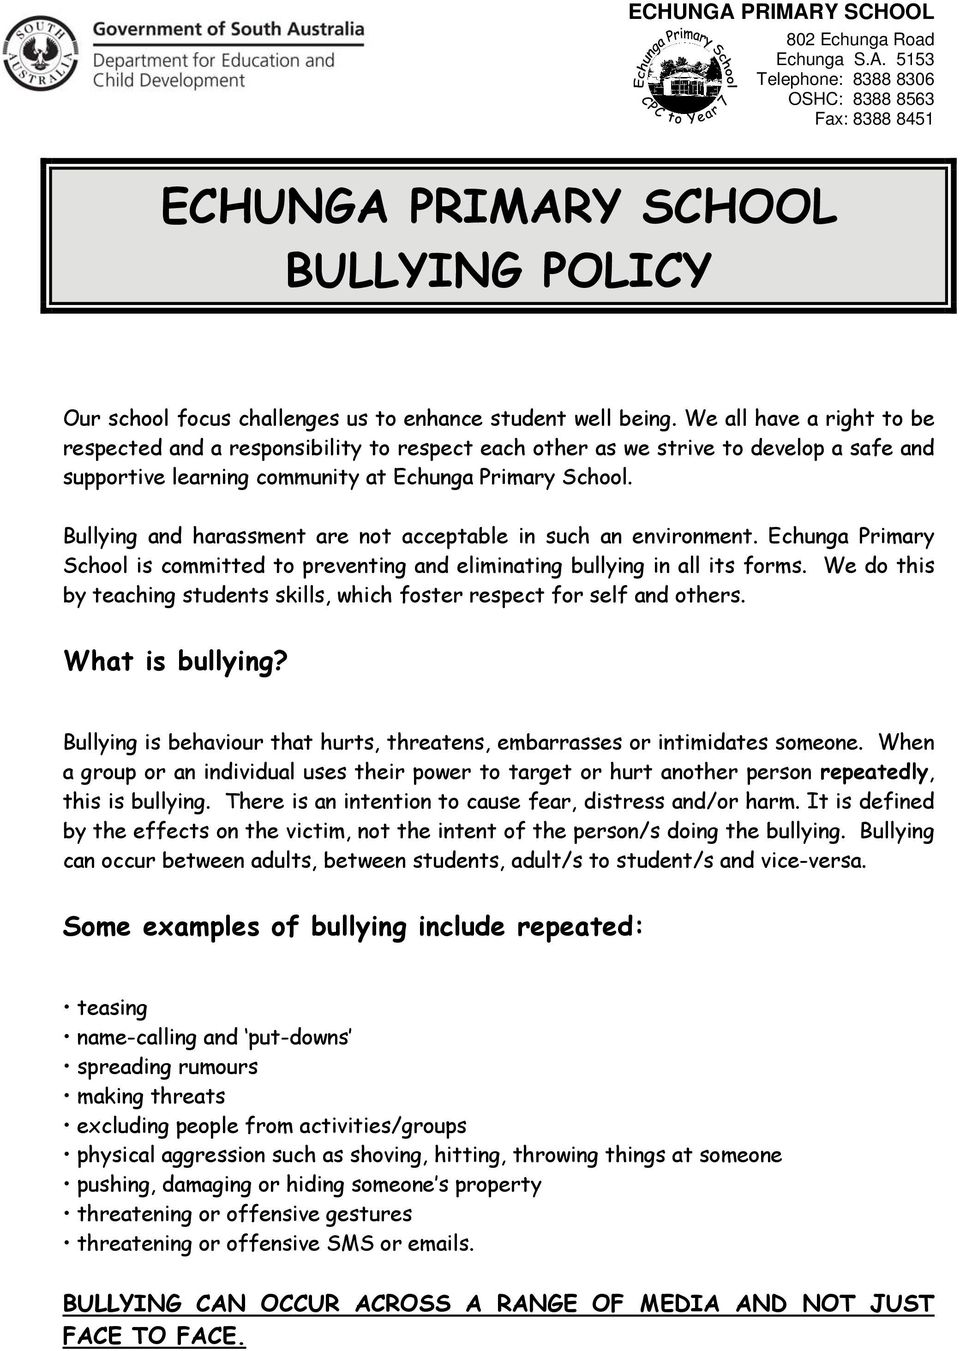 Bullying and harassment are not acceptable in such an environment. Echunga Primary School is committed to preventing and eliminating bullying in all its forms.